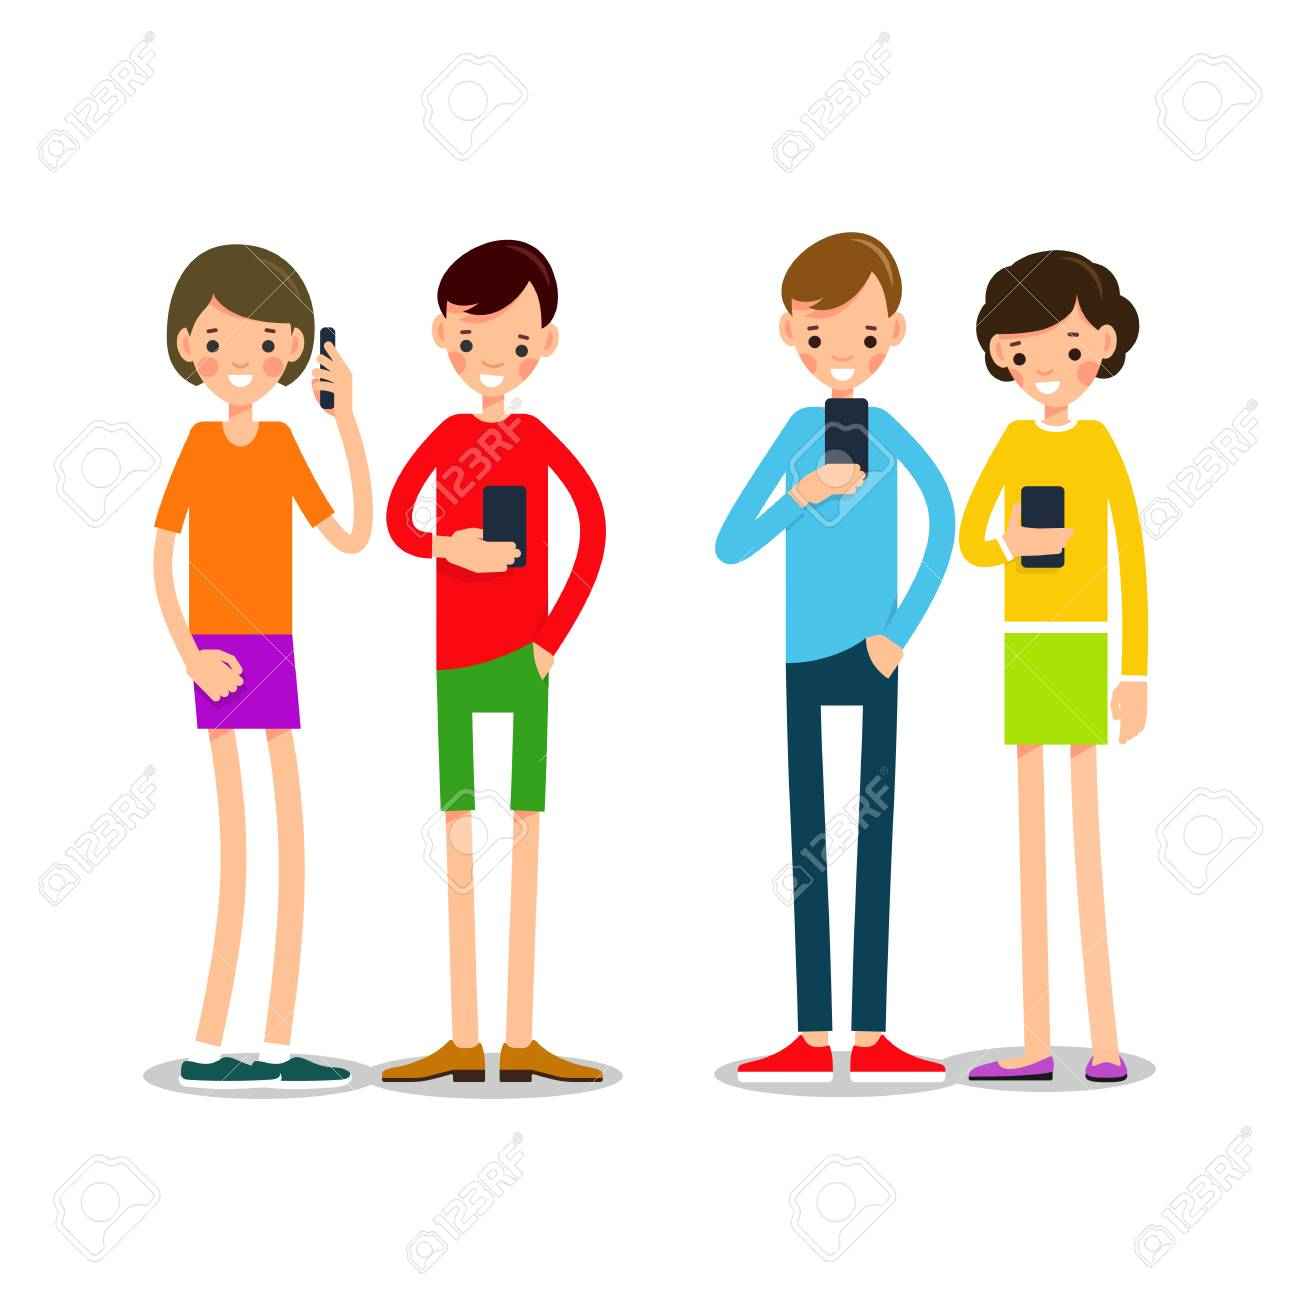 Image result for cartoon images of young people